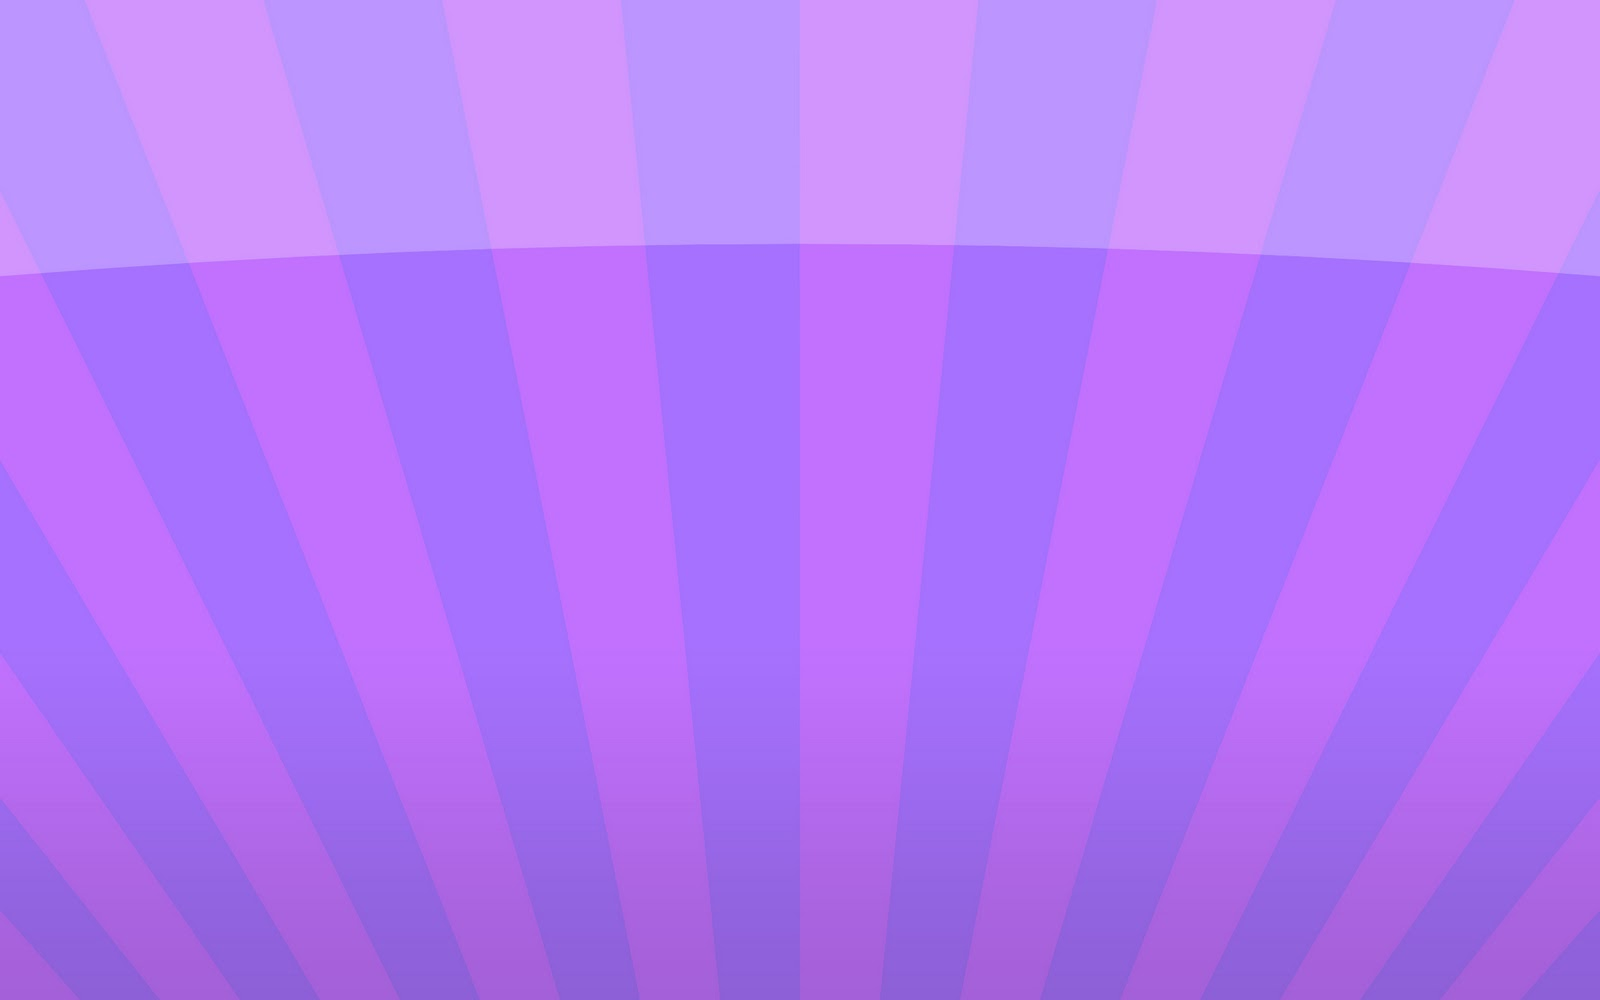 Purple and White Background widescreen wallpaper (1600 x 1000 )